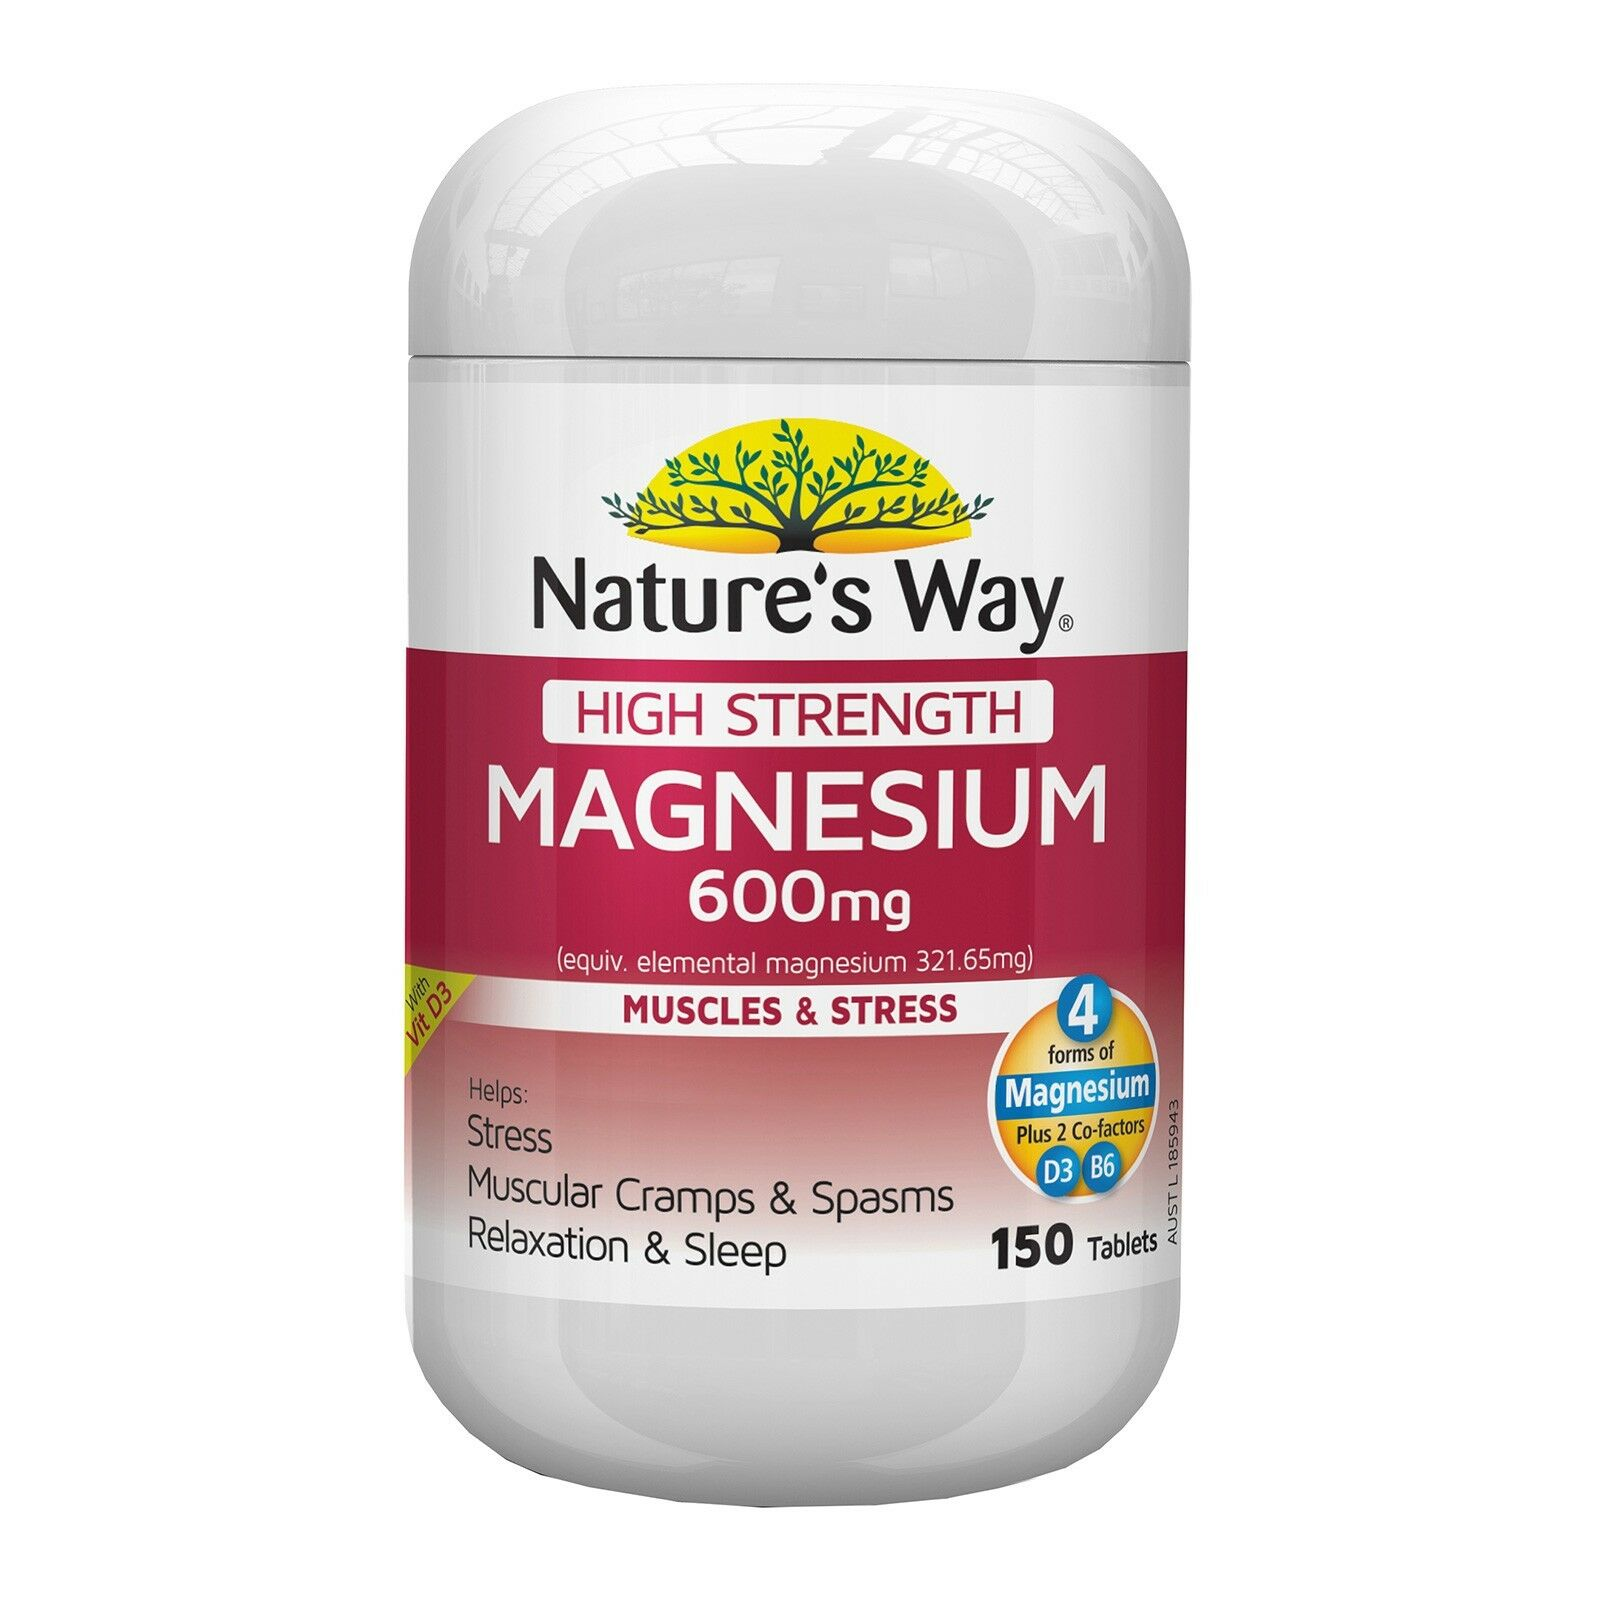 Natures Way High Strength Magnesium 600mg 150 Tabs Ebay Blackmores Total Calcium D3 200 Tablet Stock Photo